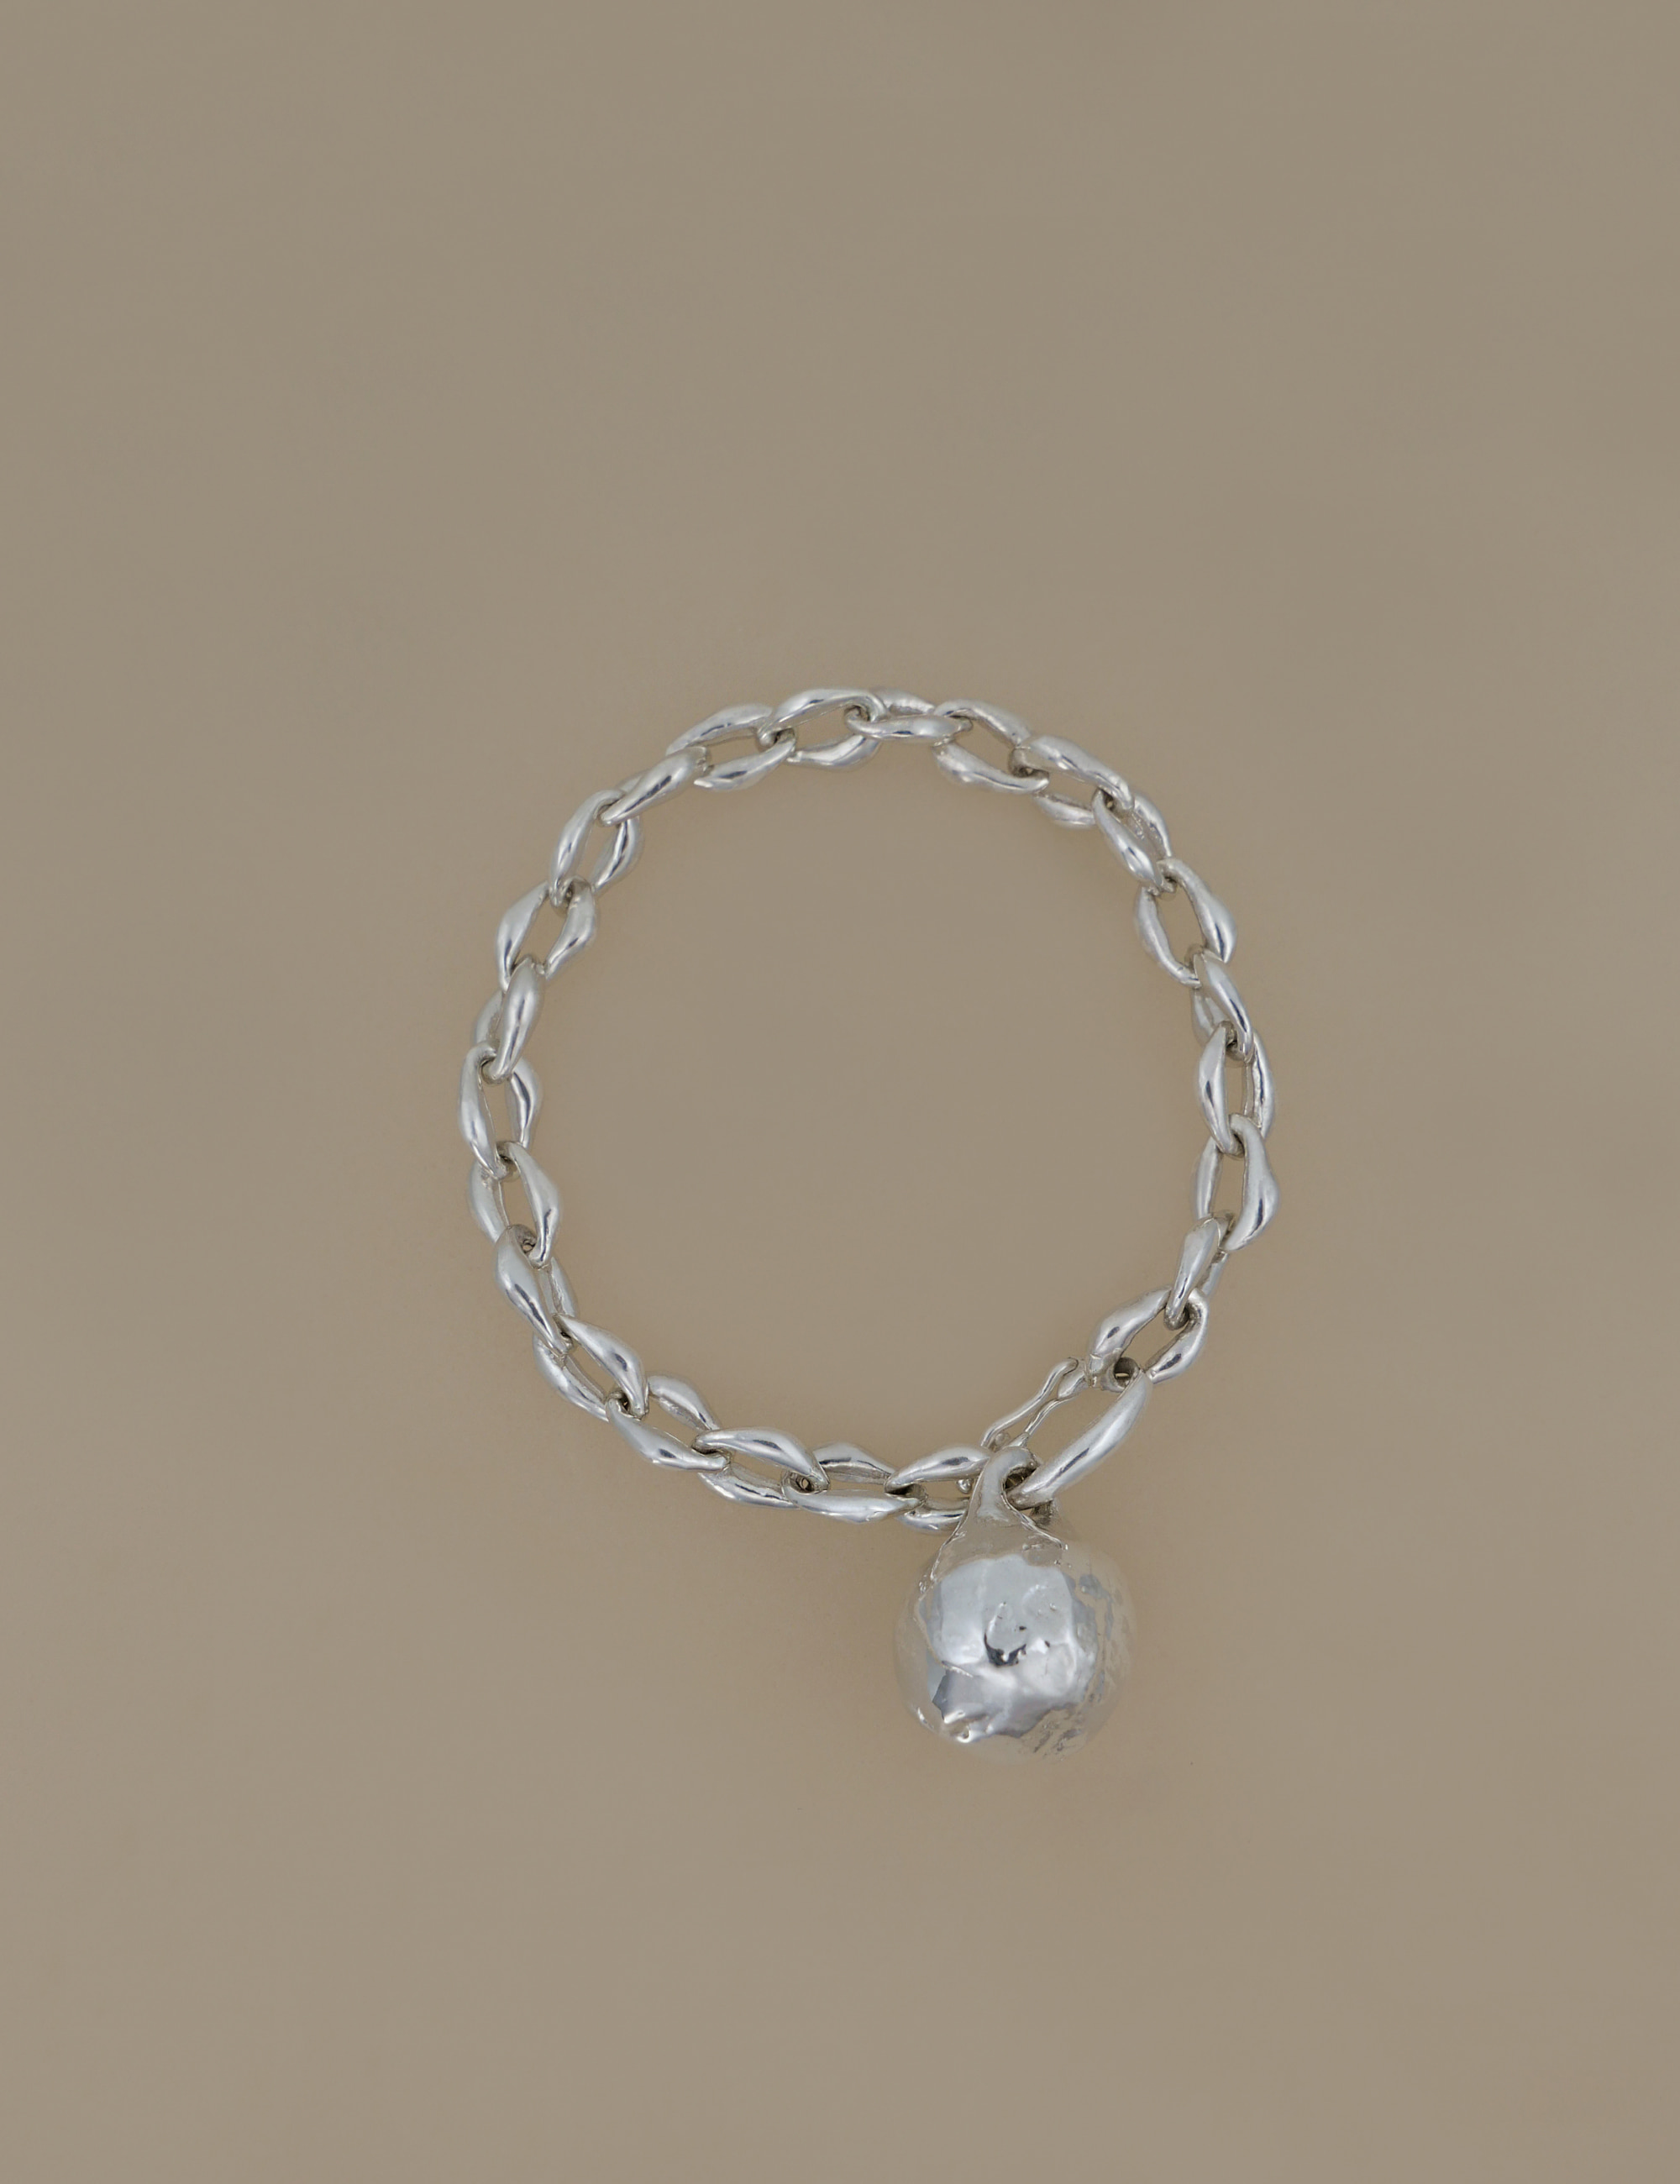 Large Ball Form Chain Bracelet